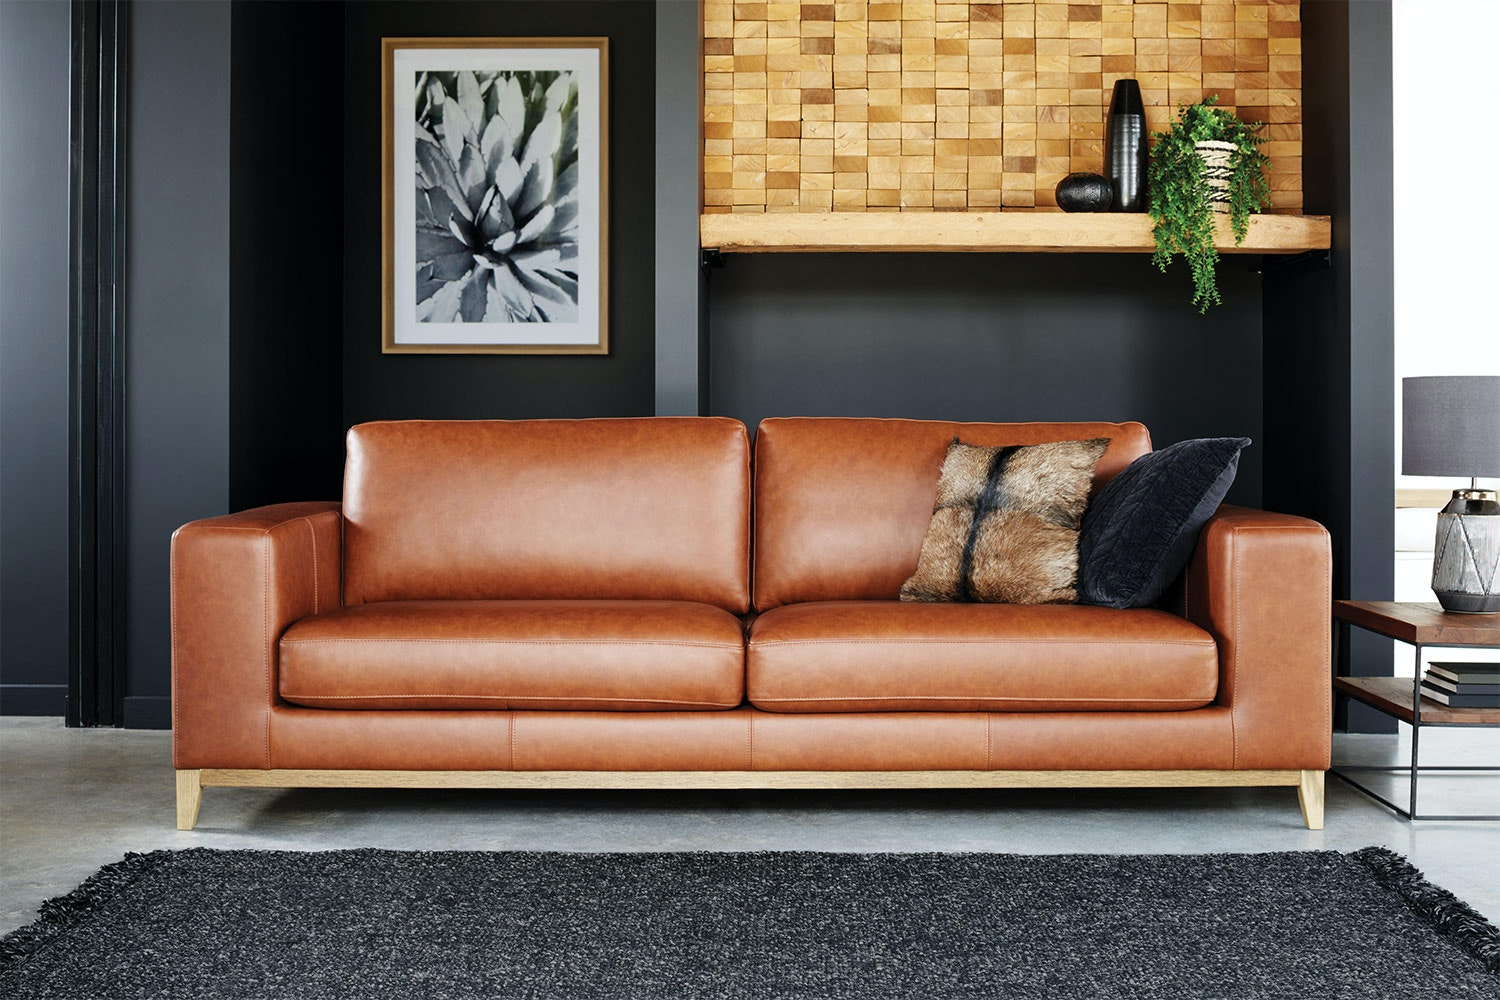 Picture of: Turin 3 5 Seater Leather Sofa Harvey Norman New Zealand